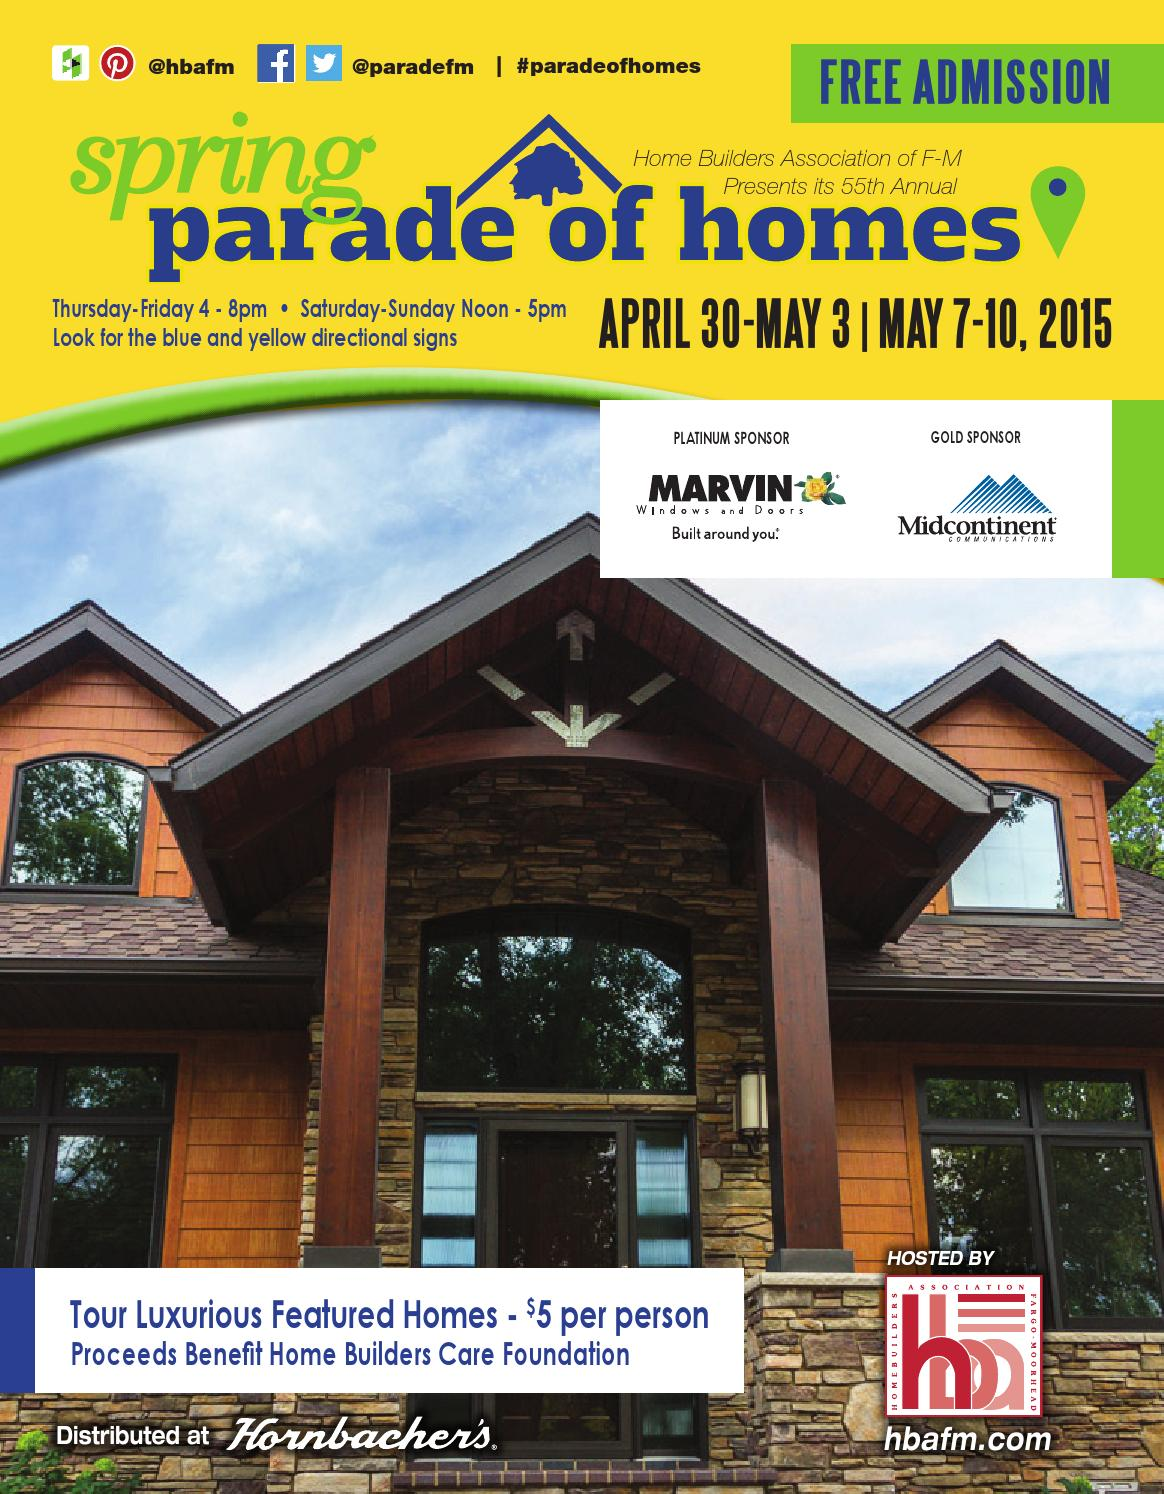 Spring parade of homes 2015 by home builders association for Nd home builders